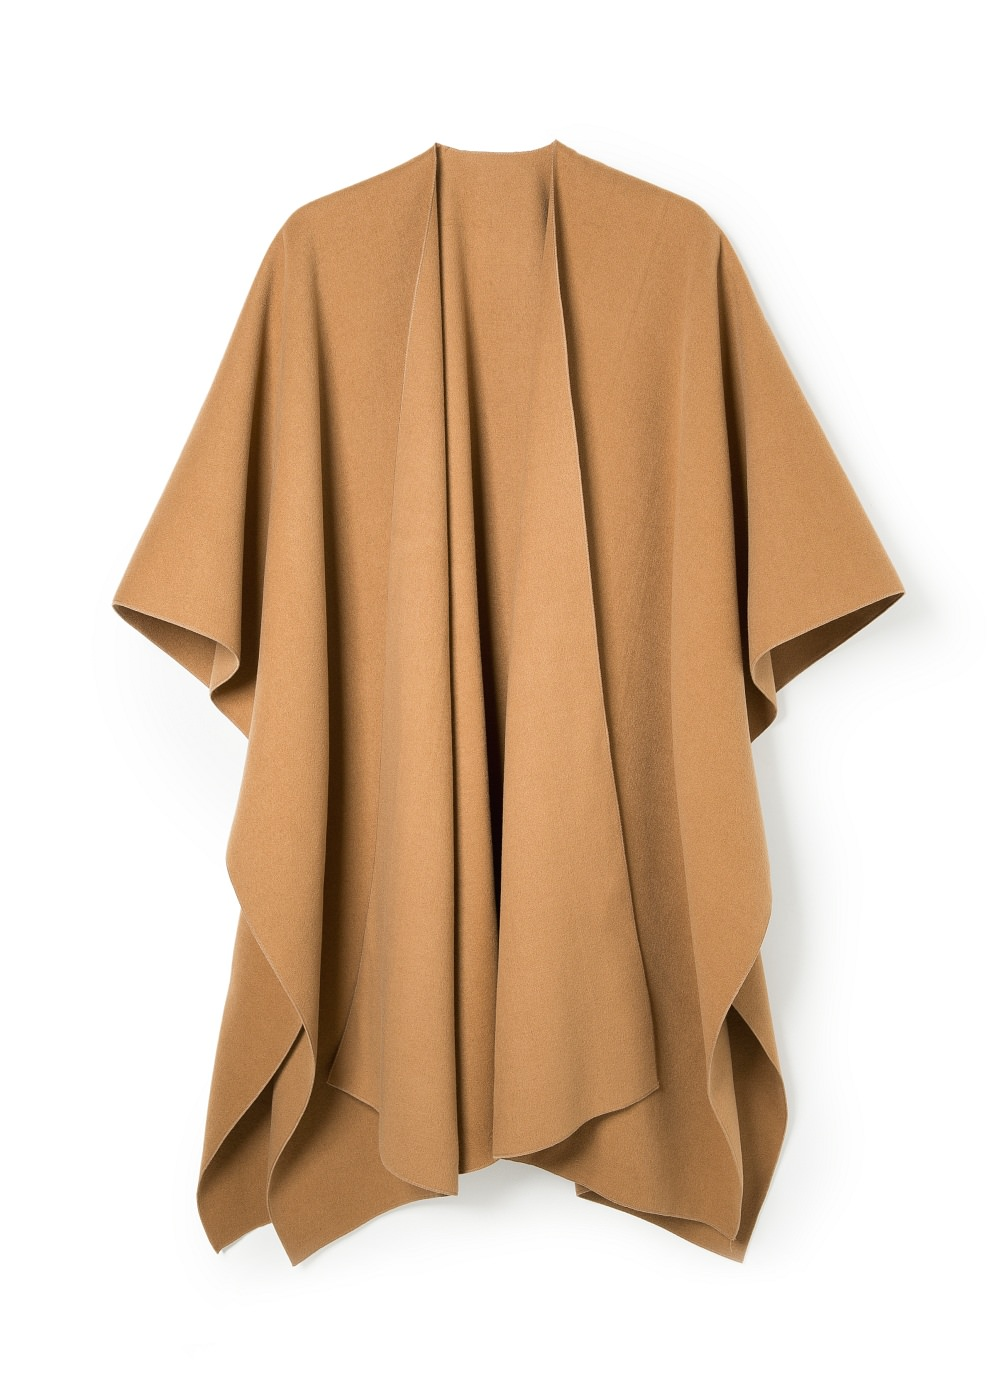 You searched for: camel poncho! Etsy is the home to thousands of handmade, vintage, and one-of-a-kind products and gifts related to your search. No matter what you're looking for or where you are in the world, our global marketplace of sellers can help you find unique and affordable options. Let's get started!